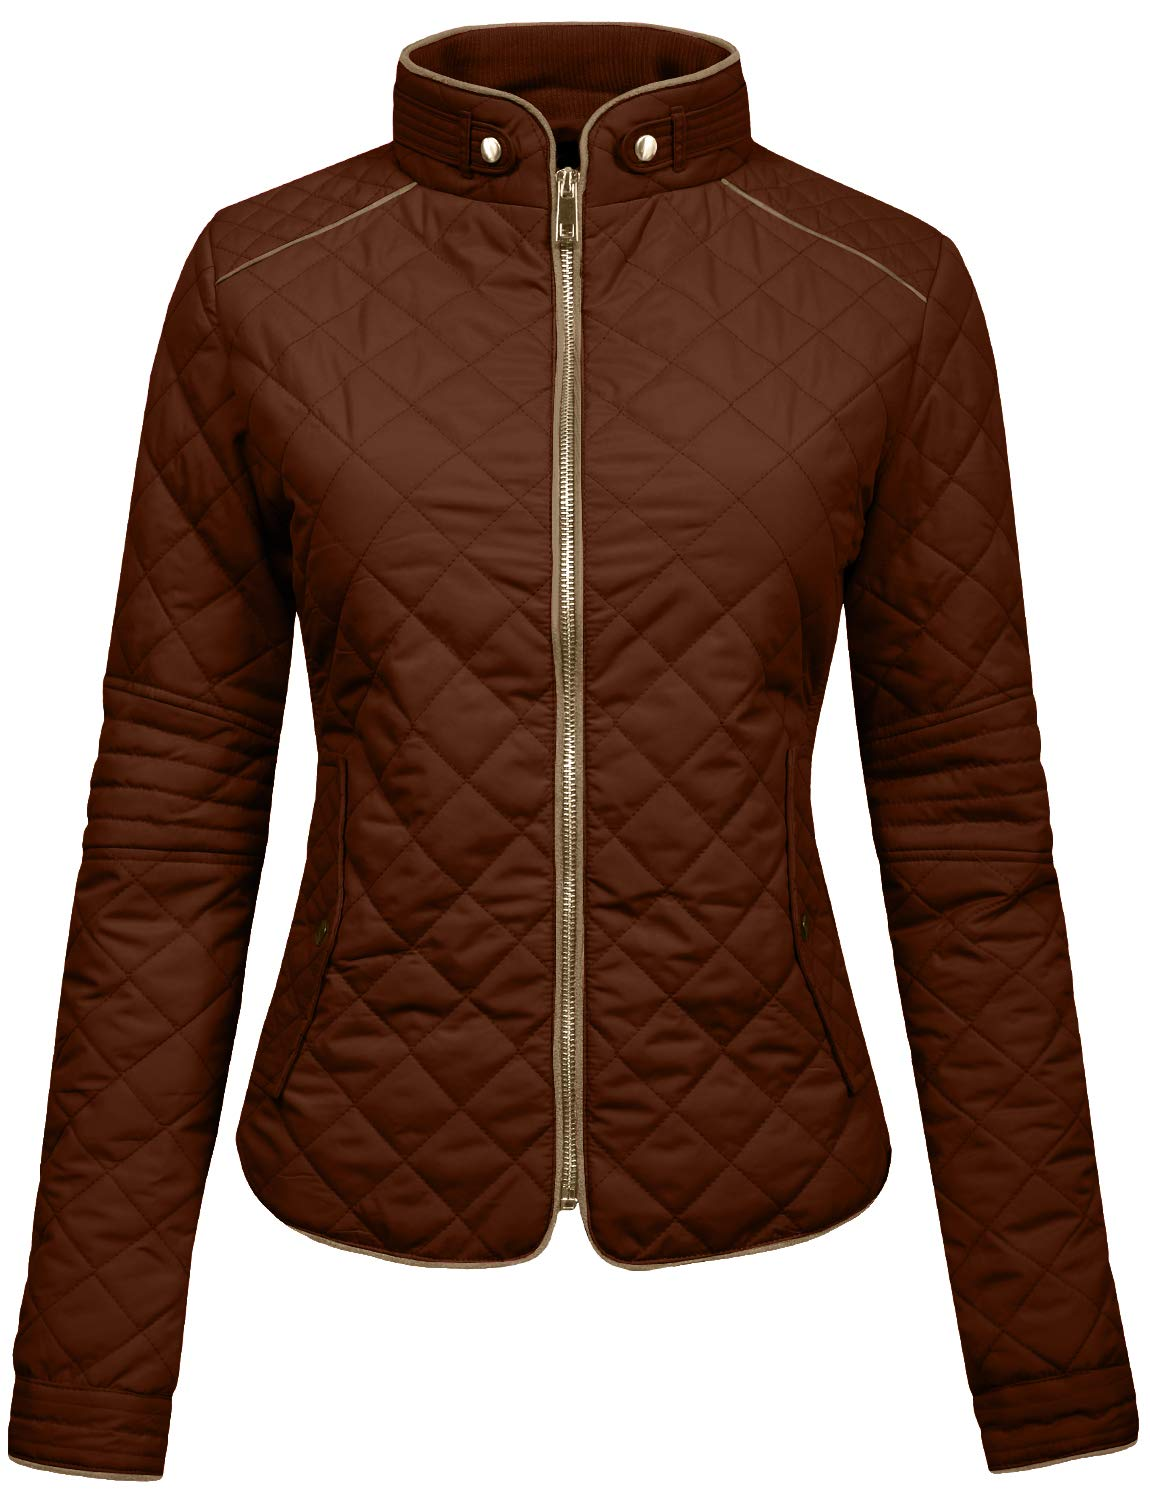 NE PEOPLE Womens Lightweight Quilted Zip Jacket, Small, NEWJ22BROWN